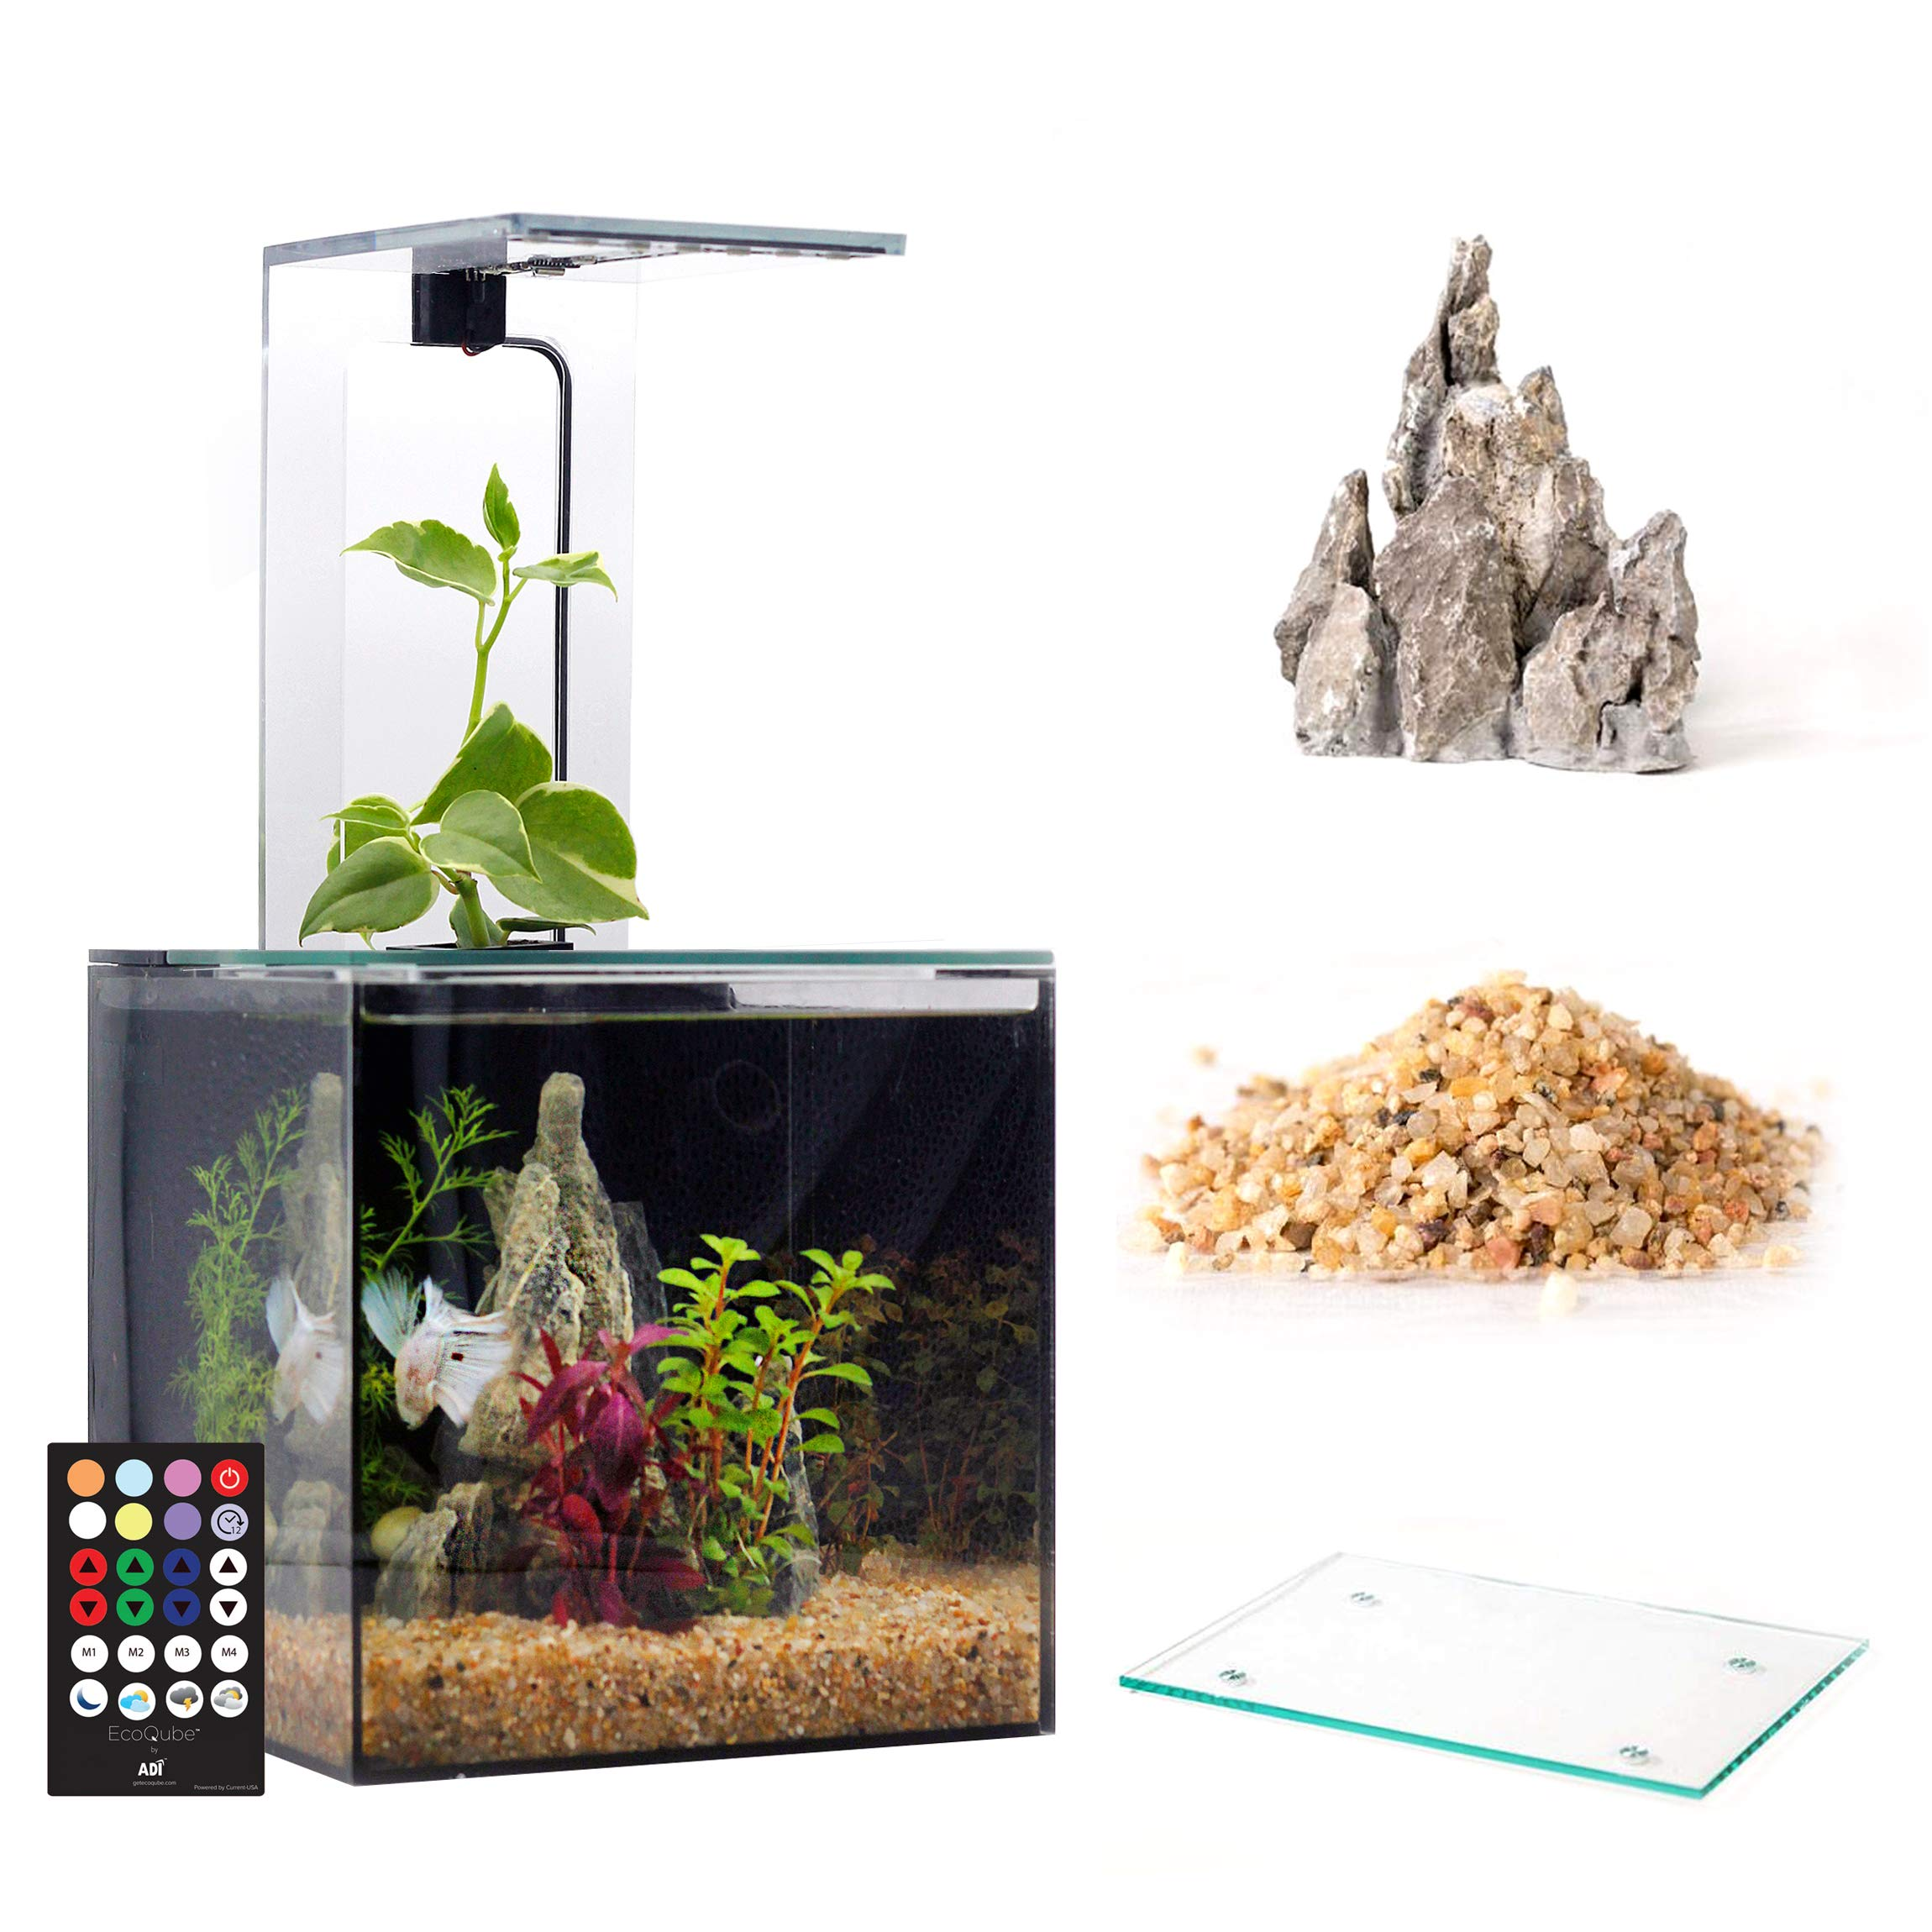 EcoQube Aquarium - Desktop Betta Fish Tank For Living Office And Home Décor by EcoQube